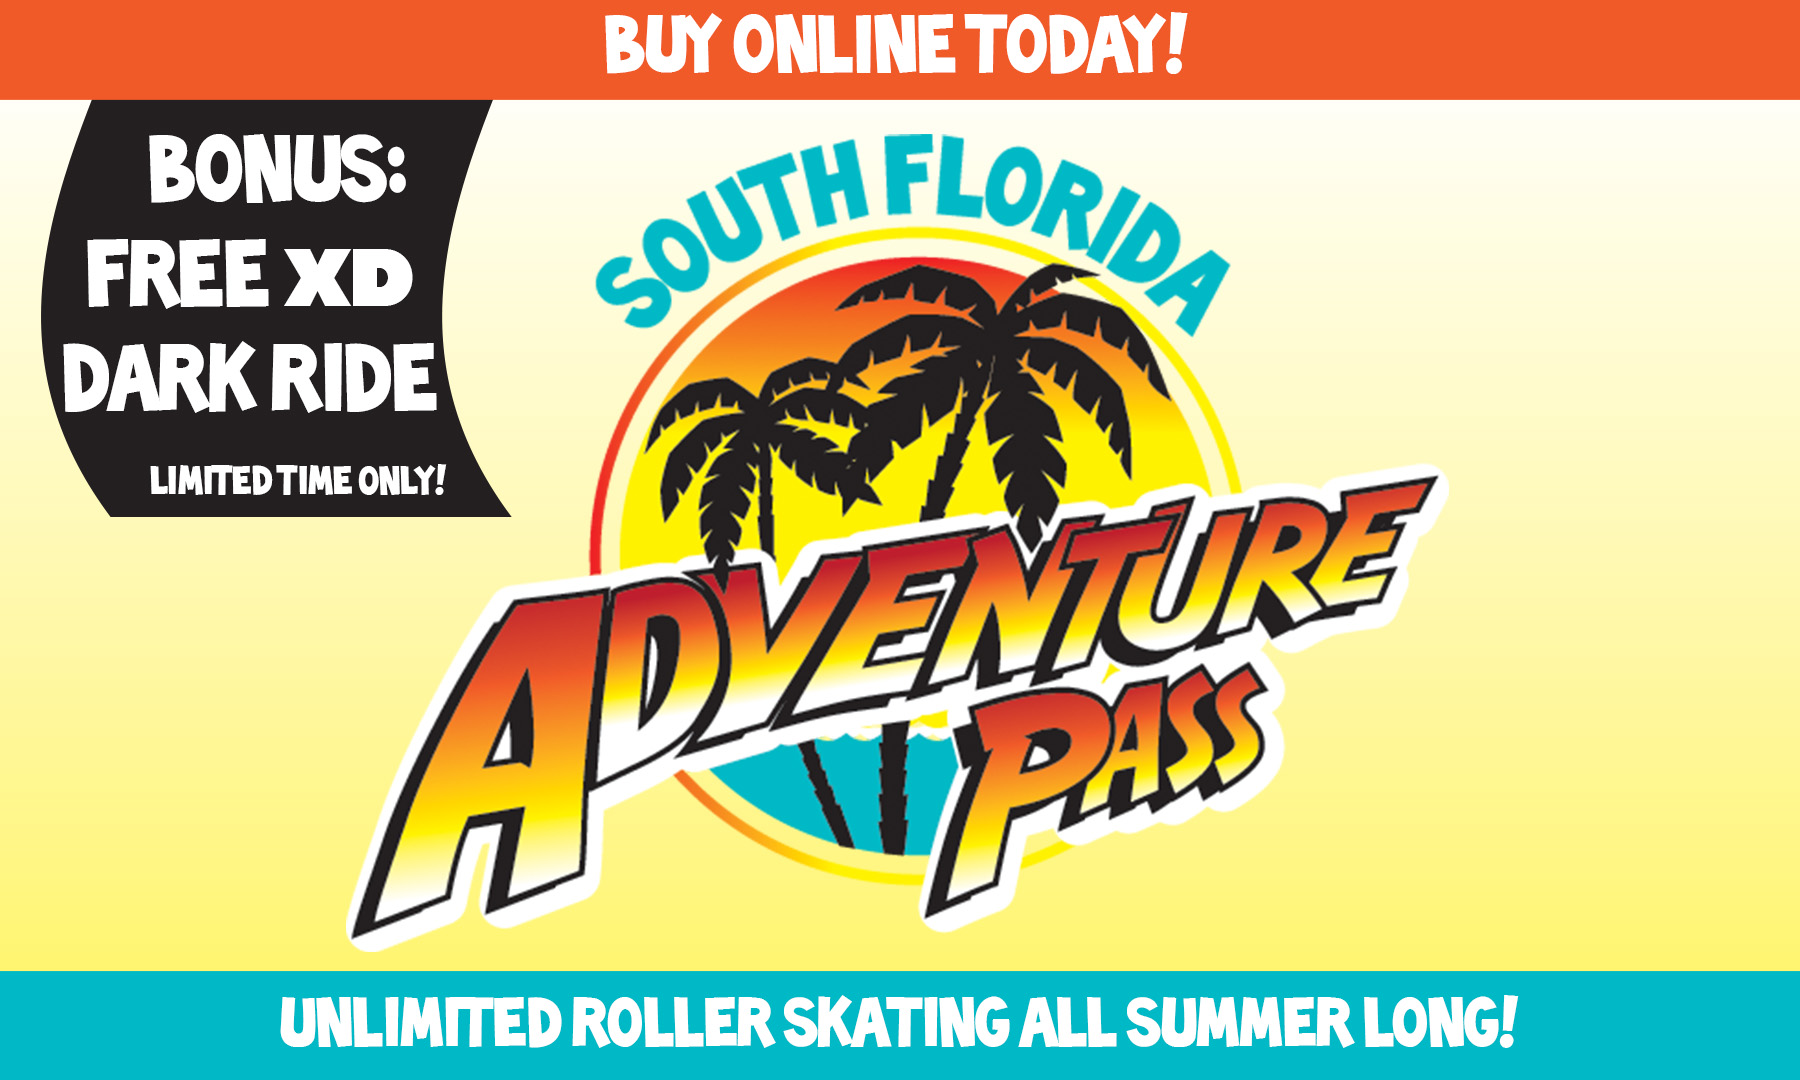 Buy a South Florida Adventure Pass Today